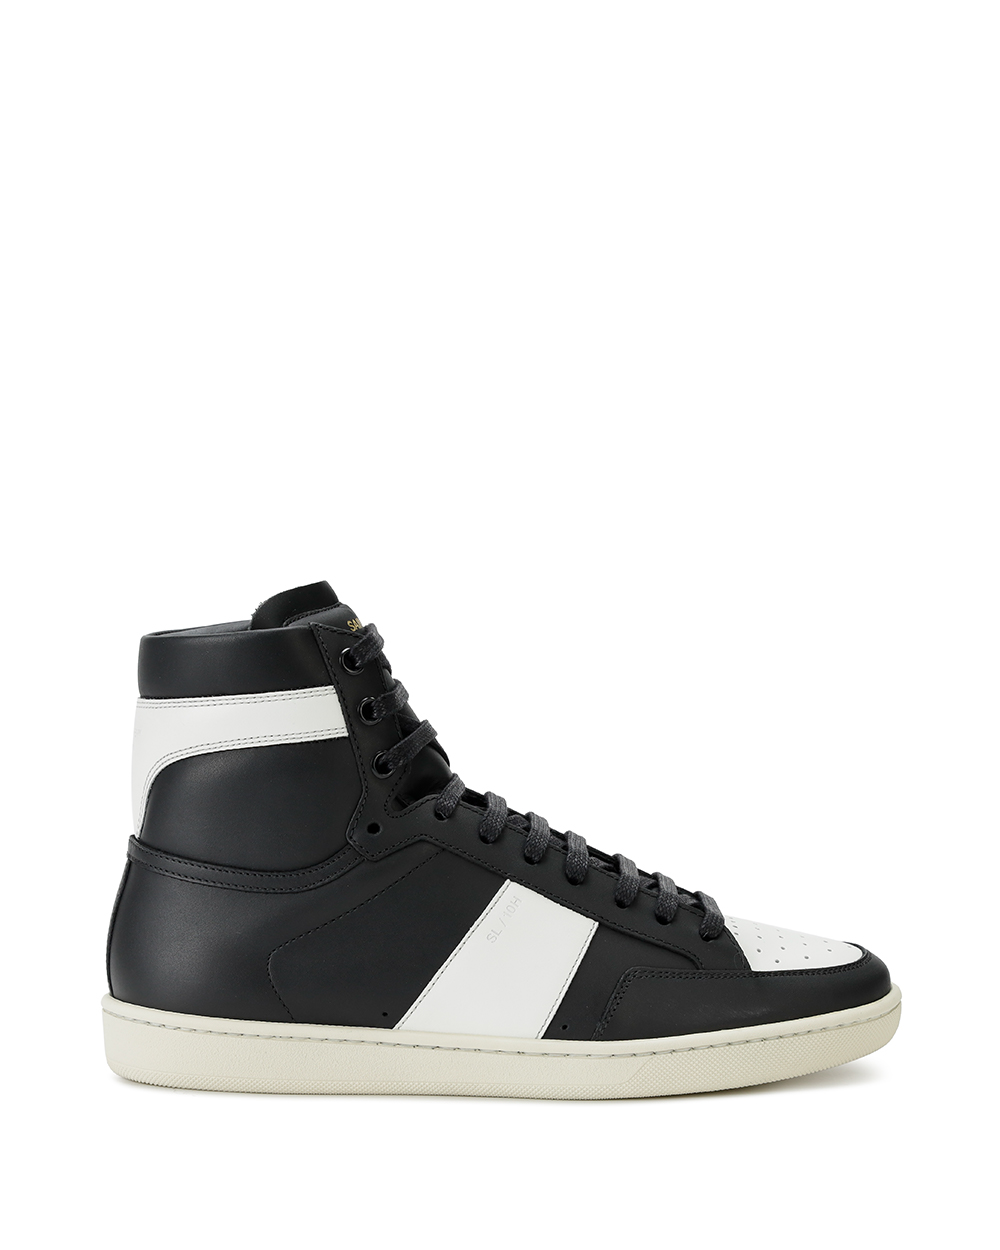 Signature Court Classic SL/10H High Top Sneakers